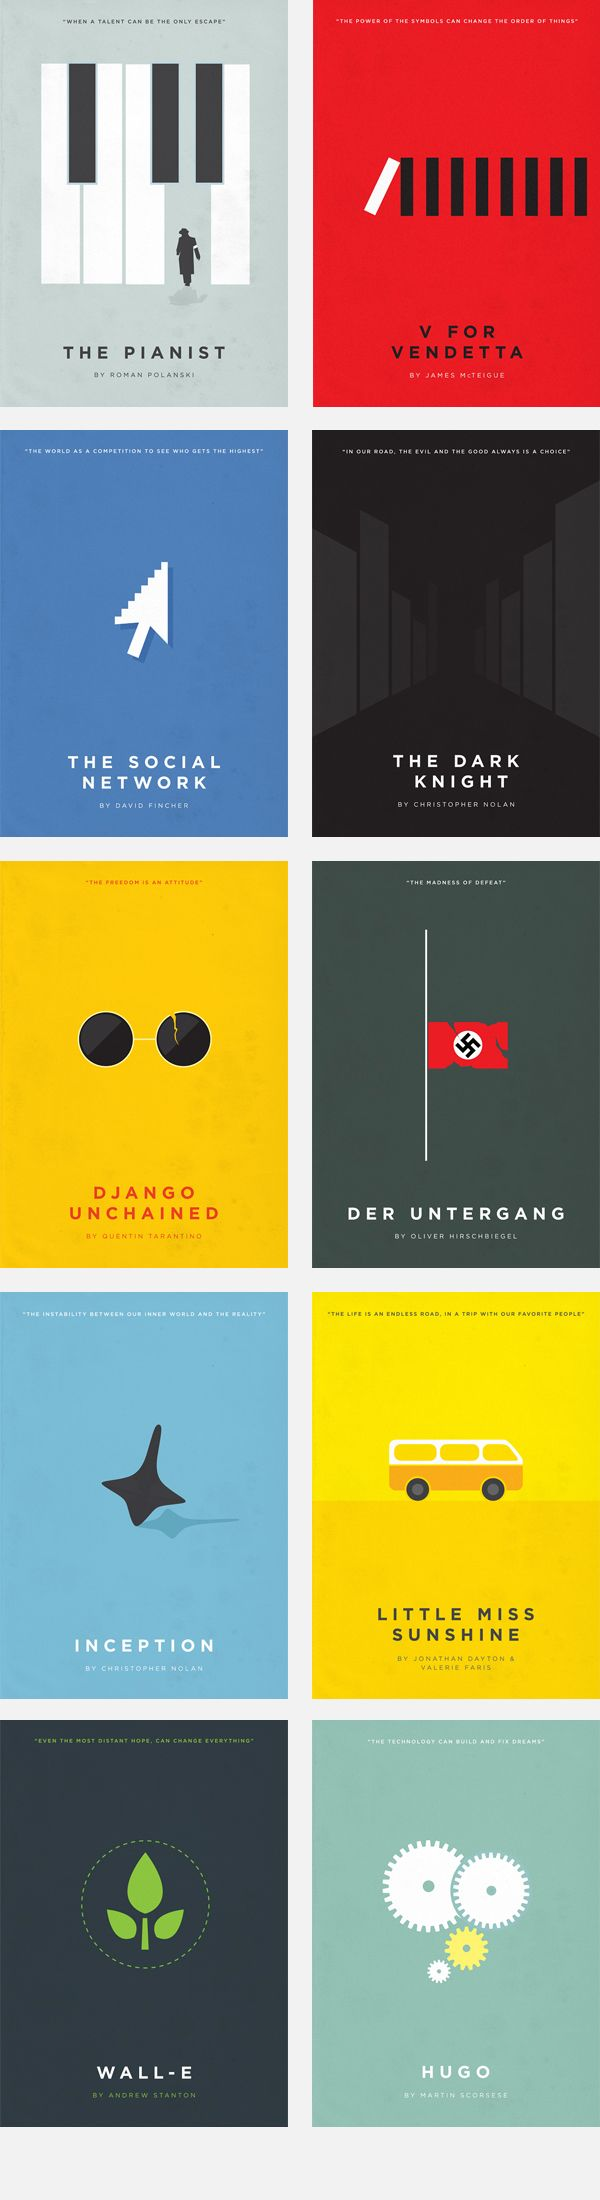 Minimalist Movie Posters Vol. II by Eder Rengifo, via Behance #filmposters